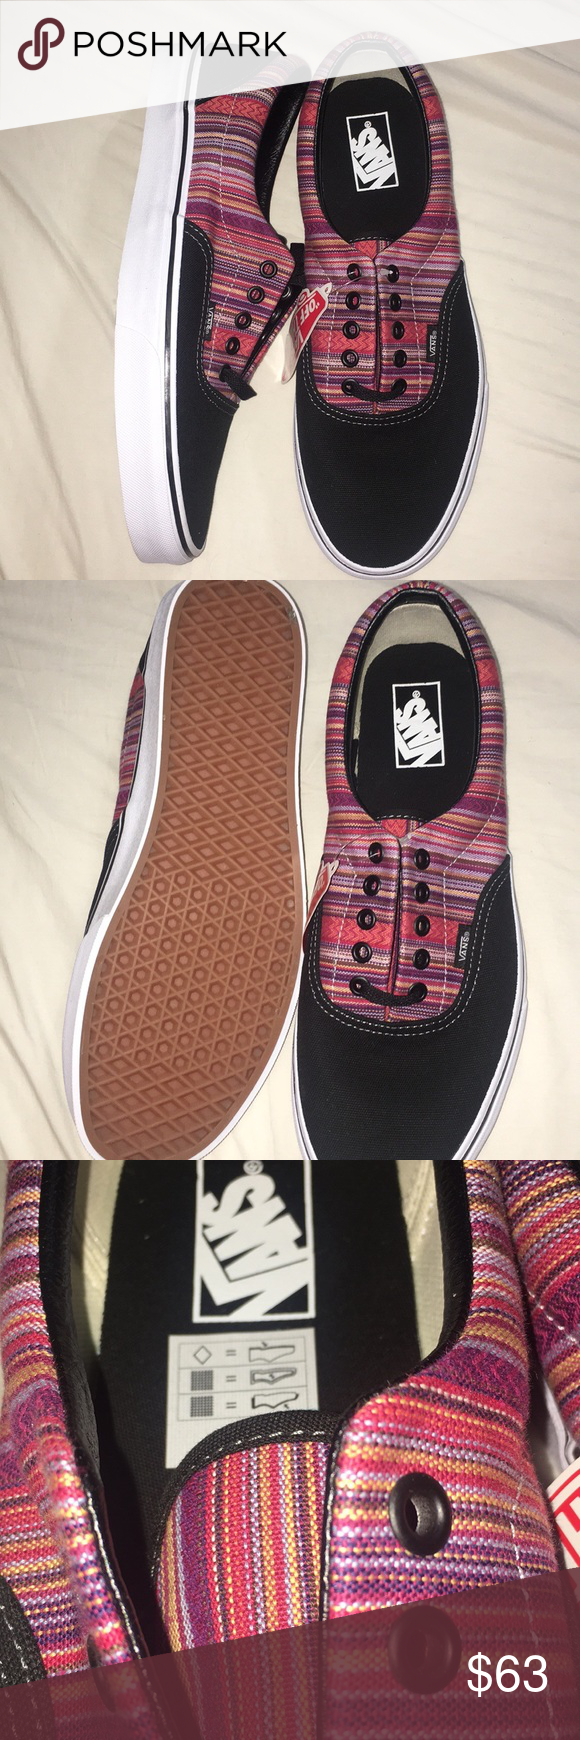 9557d5dc11 Era Vans Authentic era Vans in guate weave black multi colored. Black  canvas with multi colored stripes. Red orange pink purple blue yellow green  brown ...